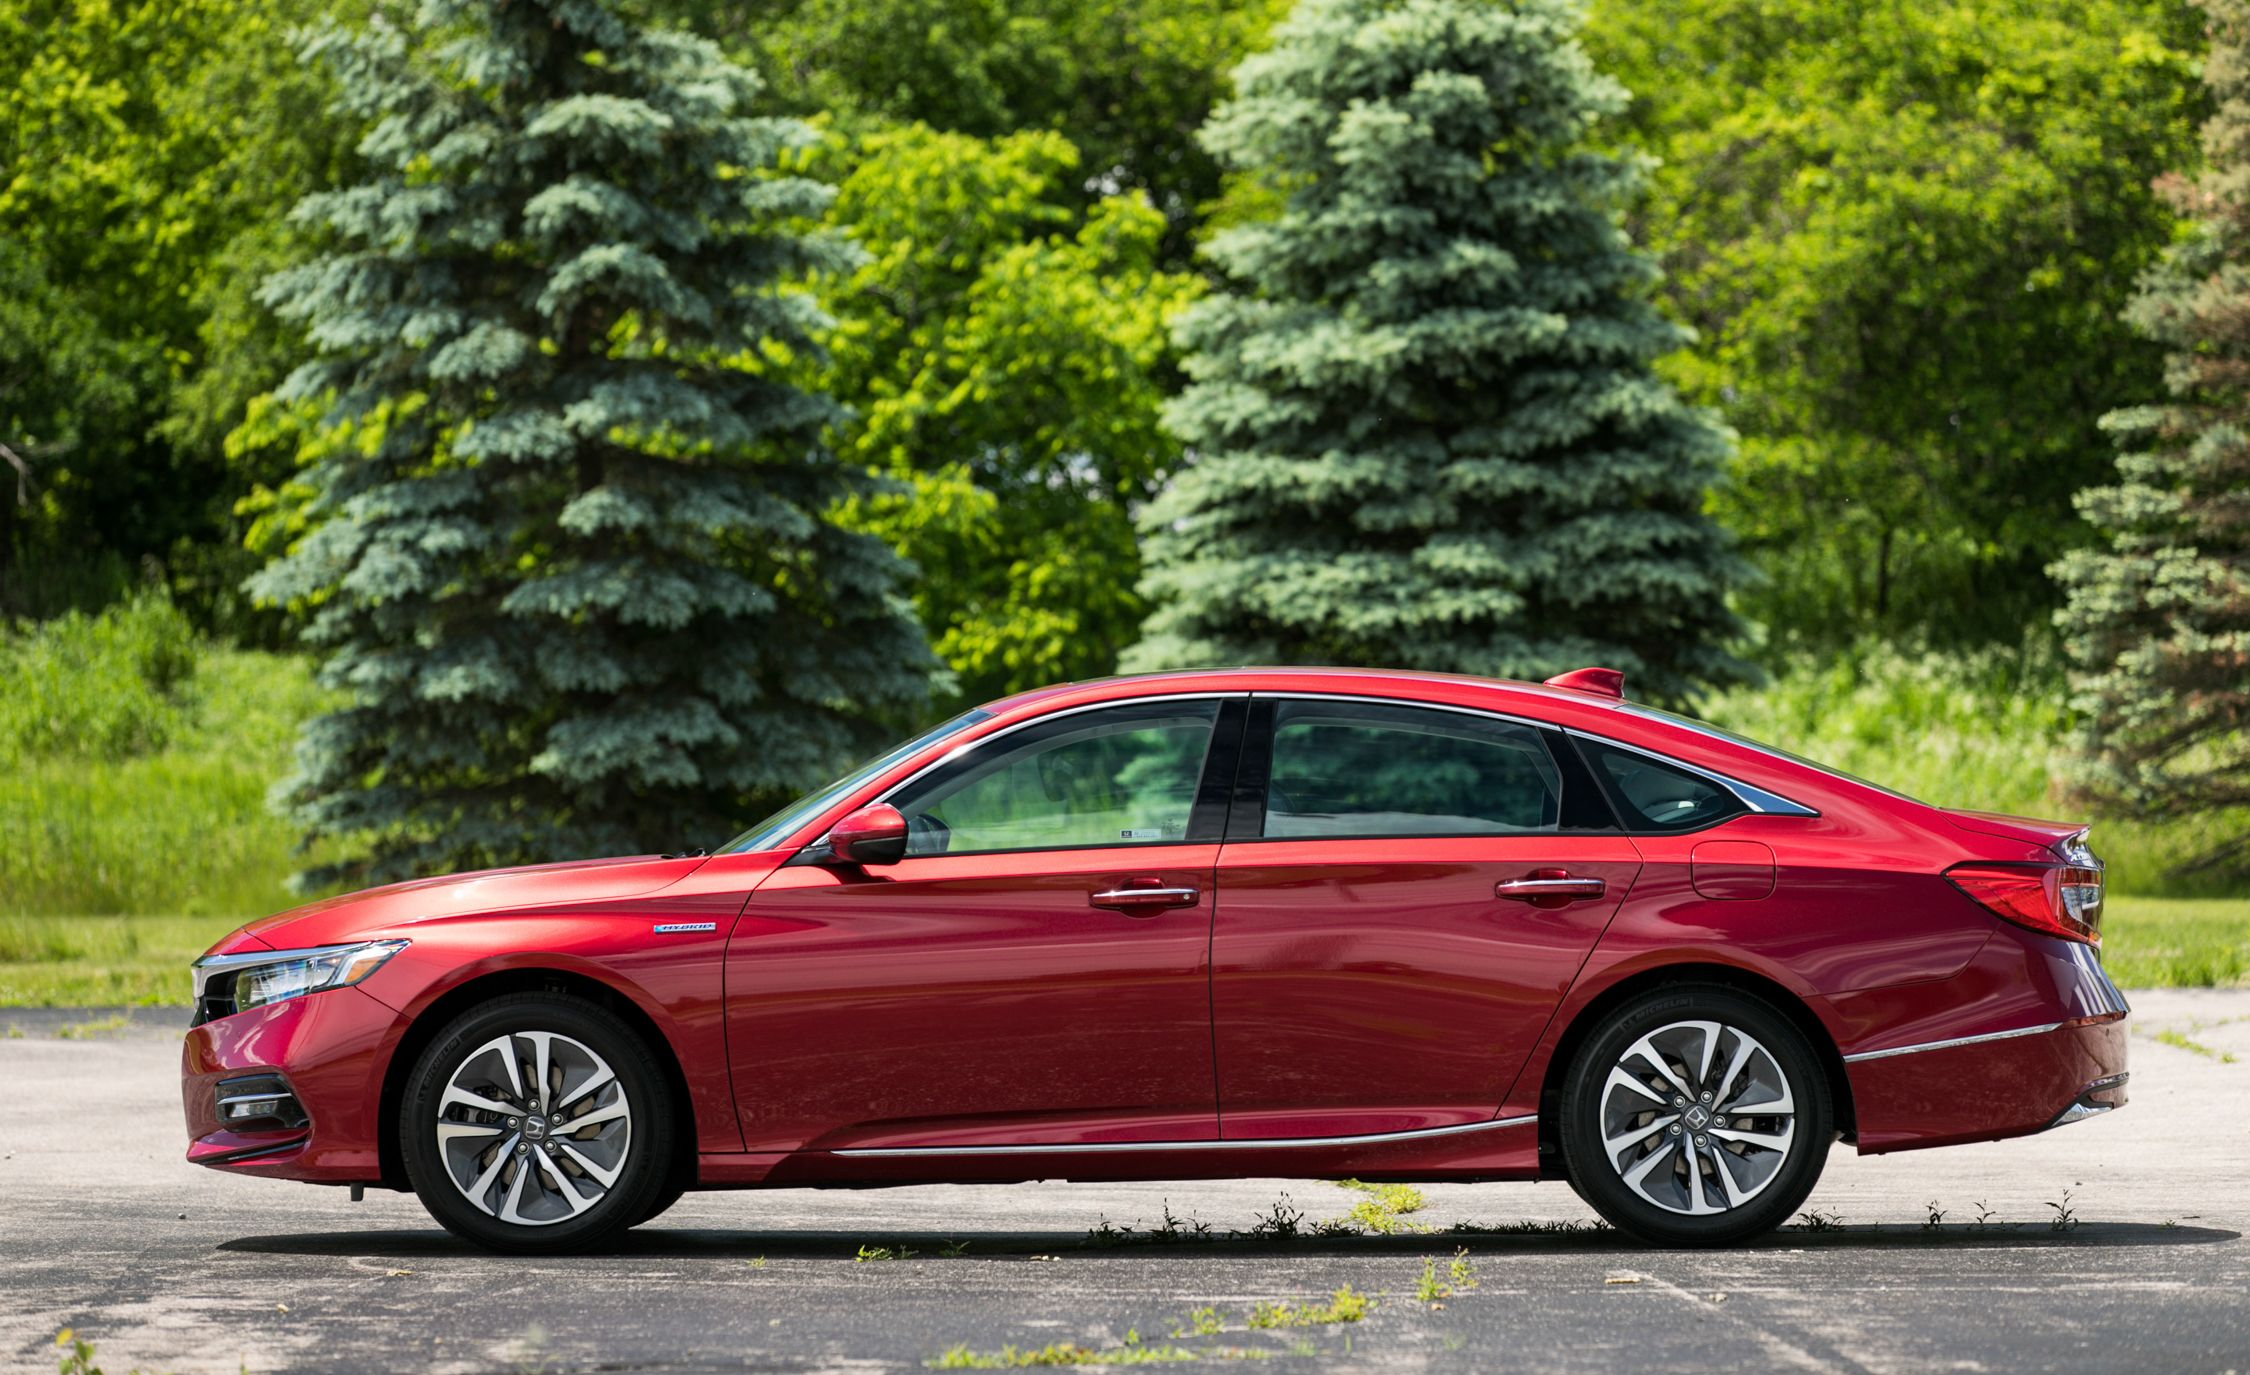 2018 Honda Accord Hybrid Fuel Efficient With A Few Compromises 1990 Engine Performance Problem 4